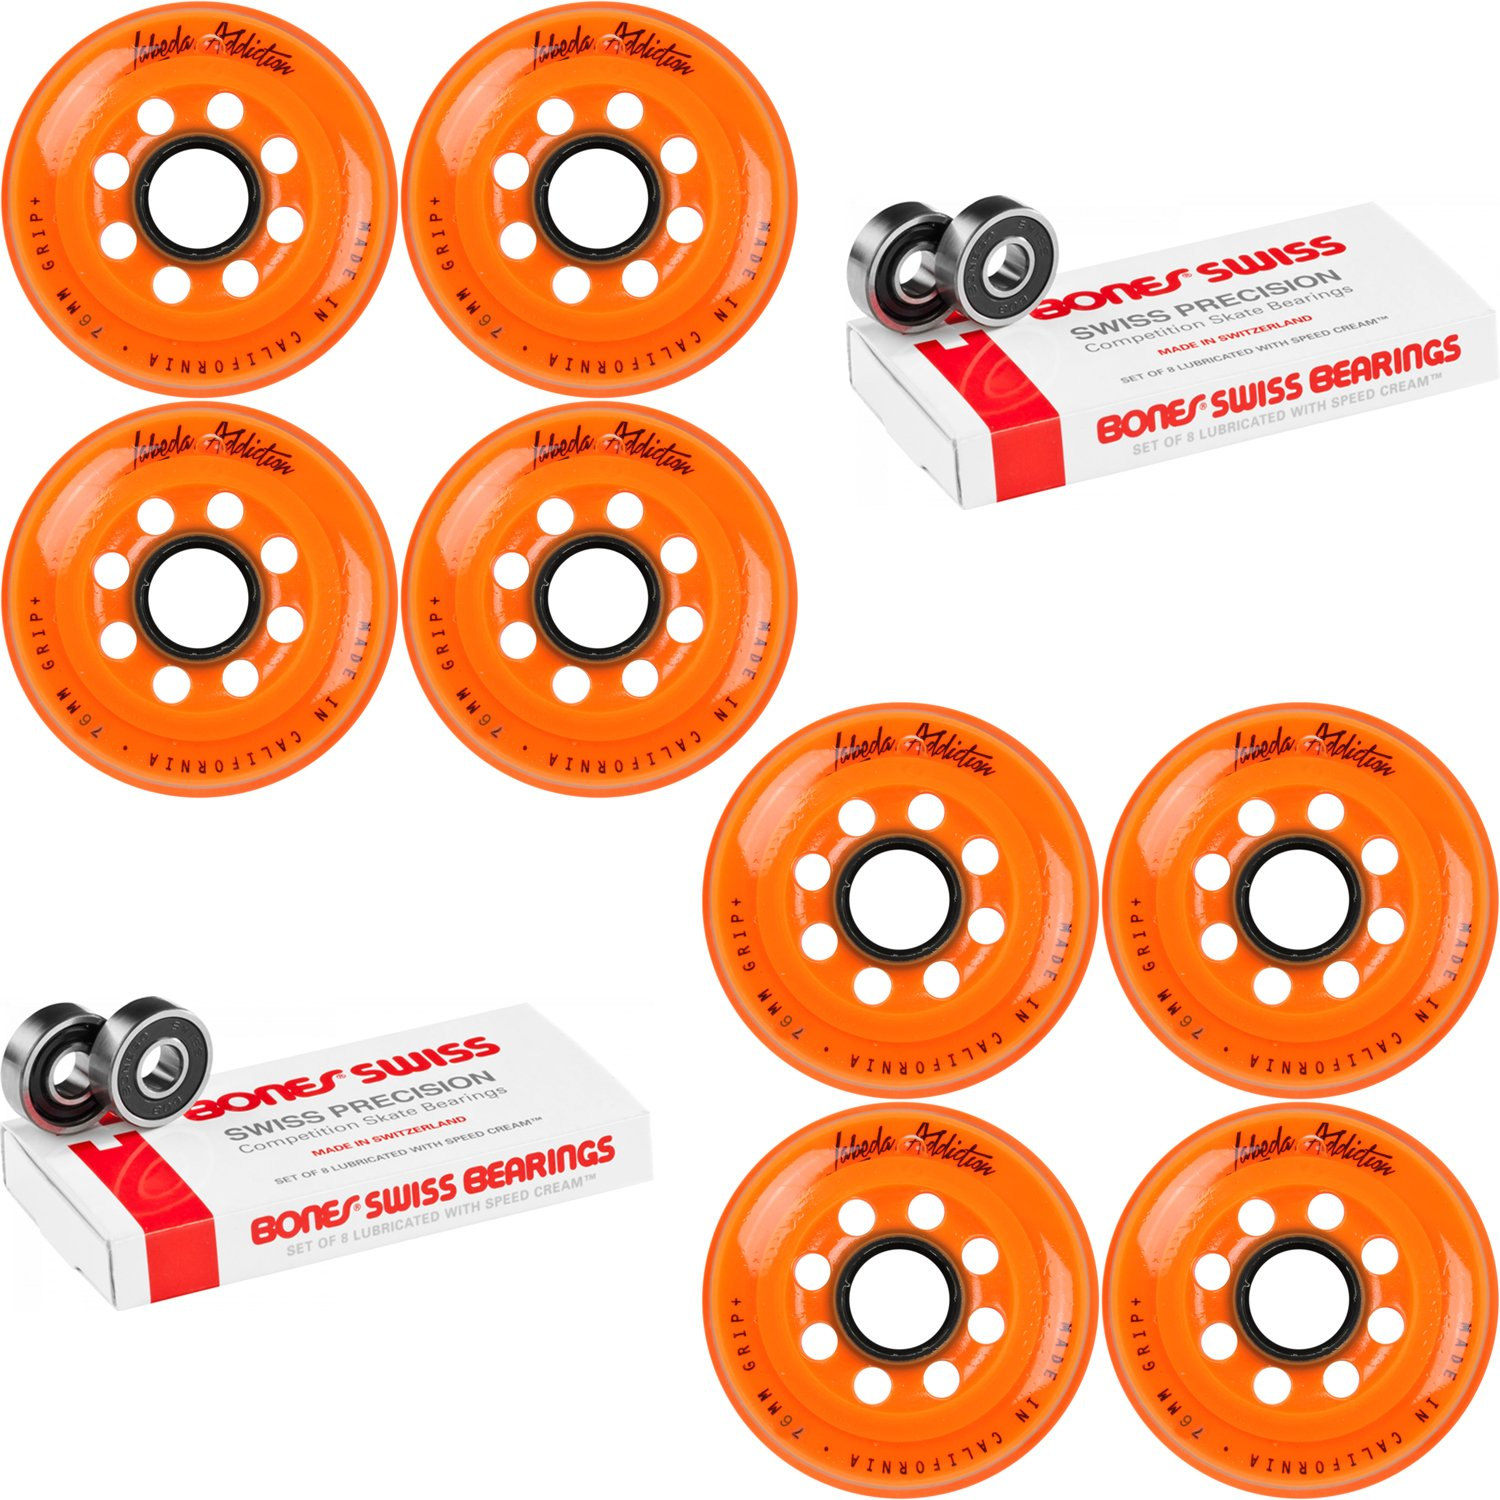 Labeda Inline Roller Hockey Skate Wheels Addiction Orange 76mm 8 Set Bones Swiss